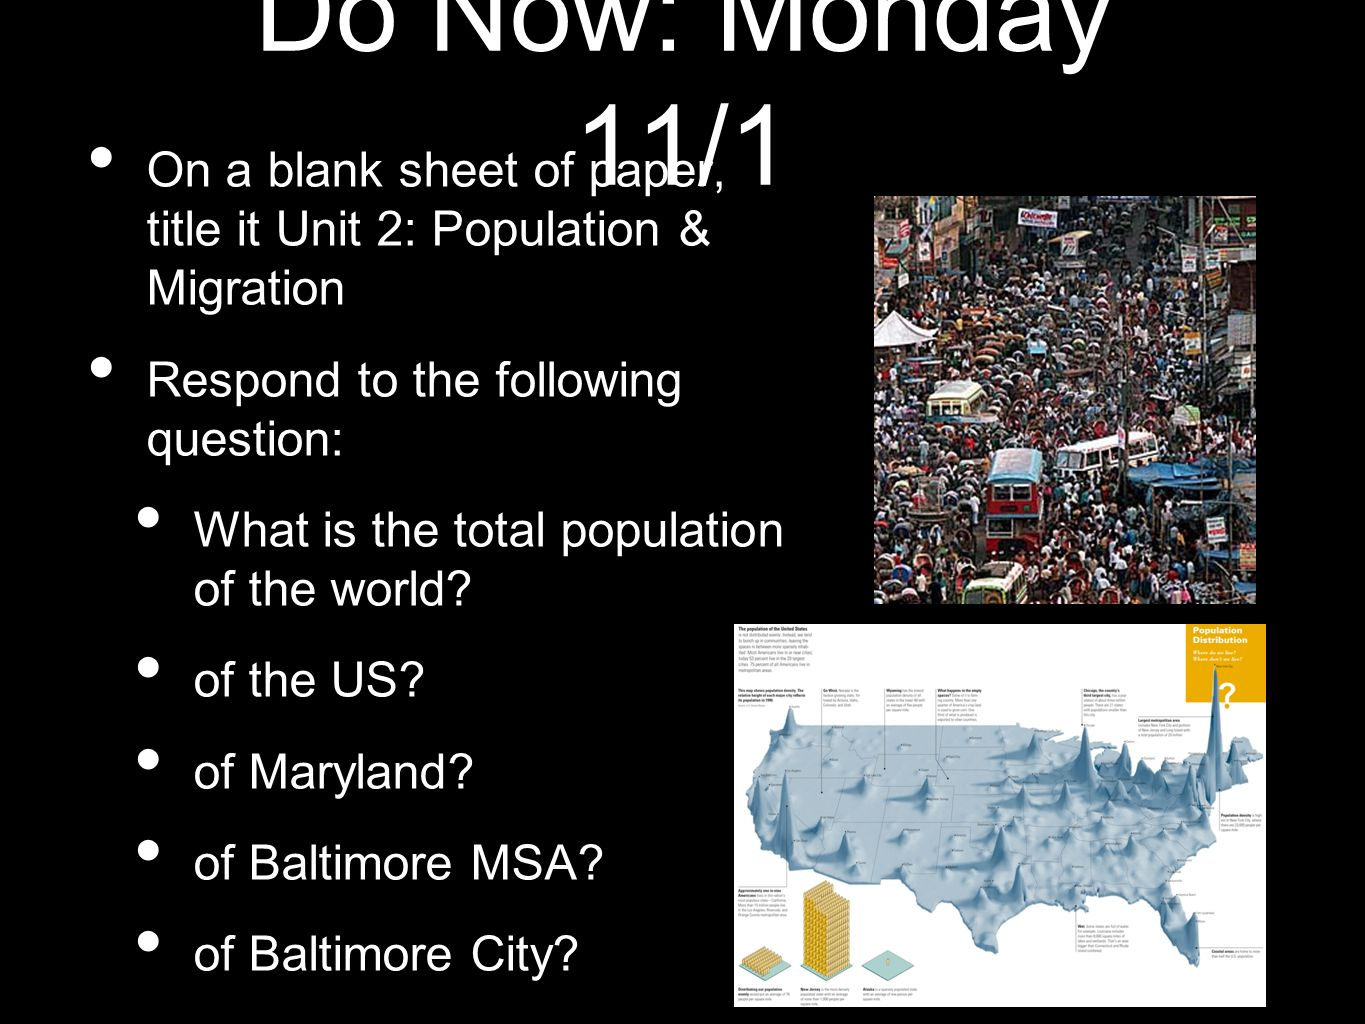 Do Now: Monday 11/1 On a blank sheet of paper, title it Unit 2: Population & Migration. Respond to the following question: